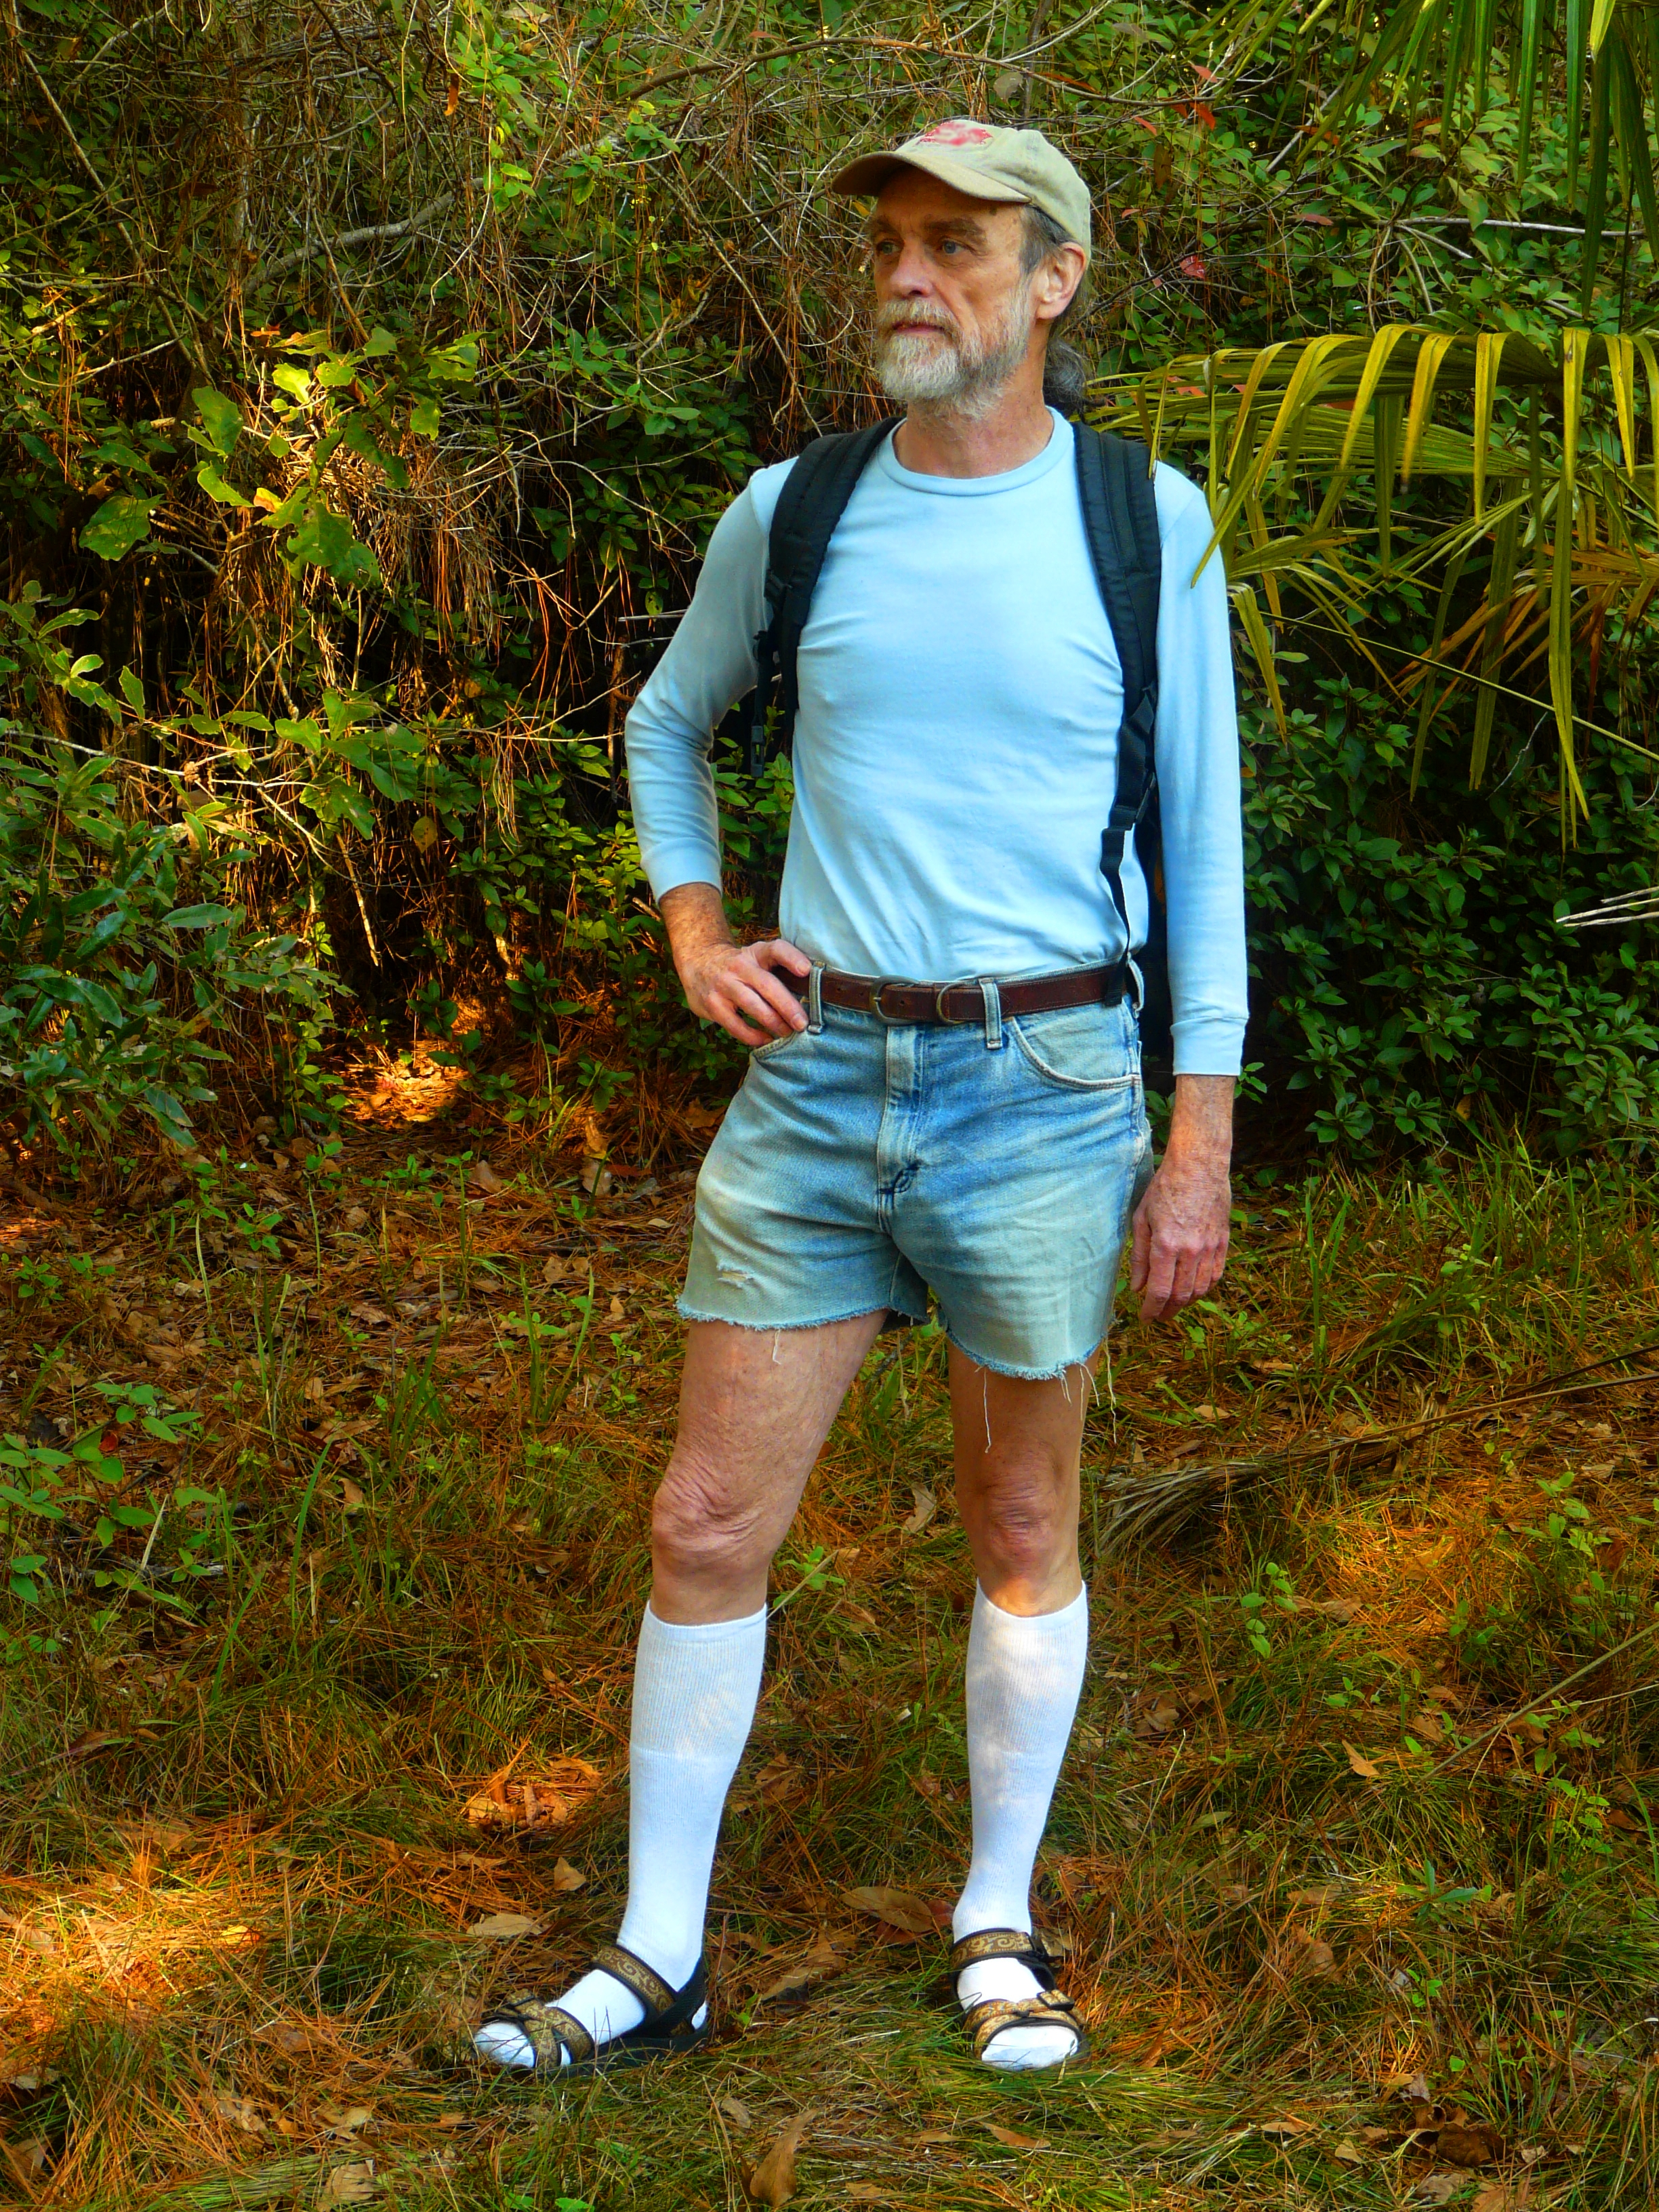 e09b20e1d8b0 Socks and sandals. From Wikipedia ...